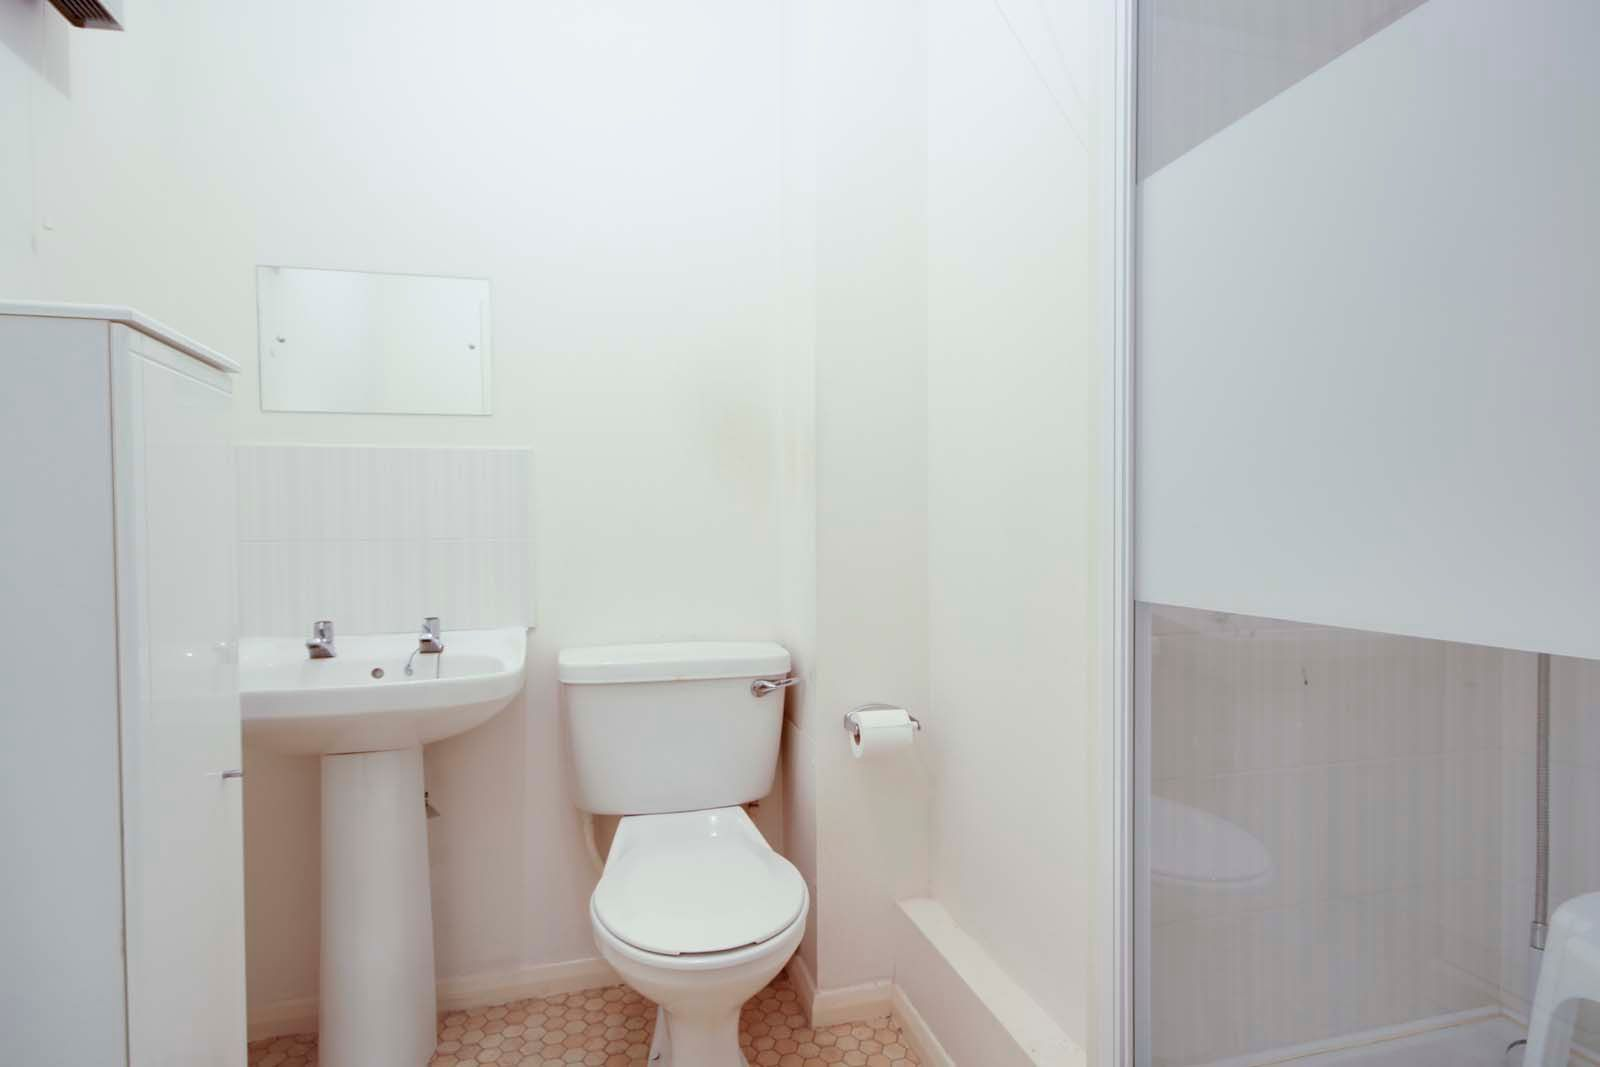 2 bed Apartment for sale in East Preston - Shower room (Property Image 8)